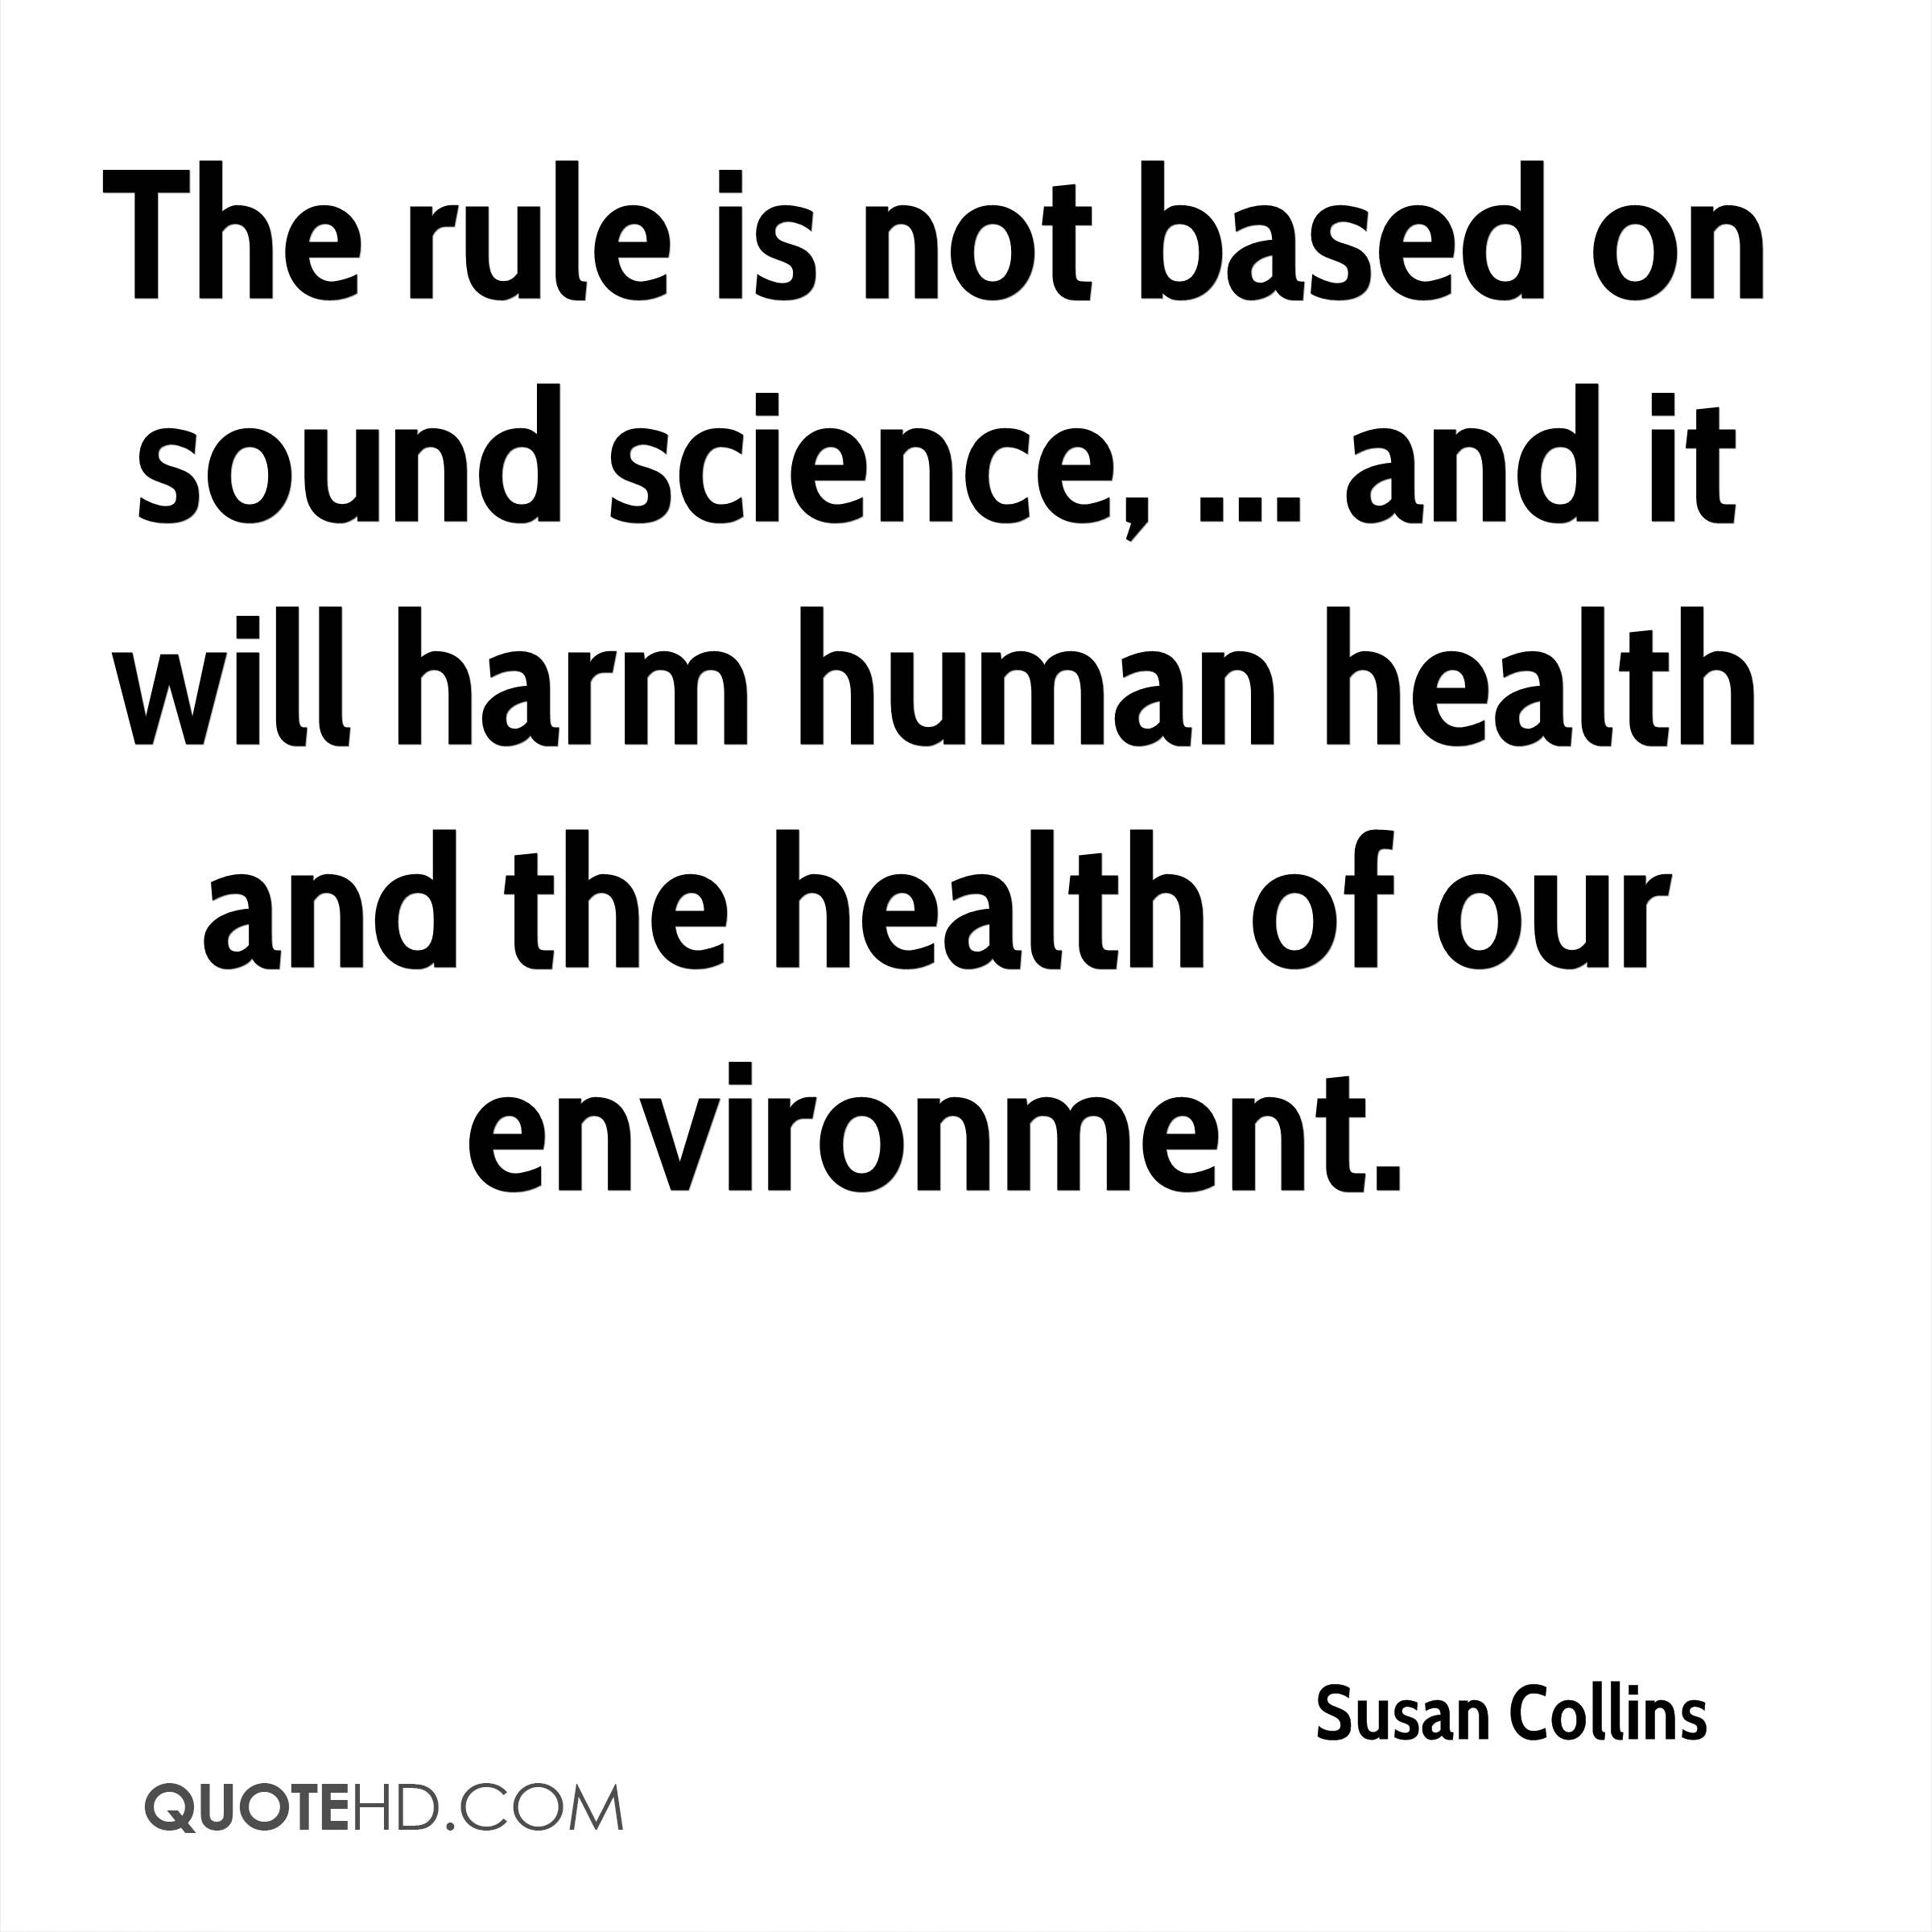 The rule is not based on sound science, ... and it will harm human health and the health of our environment.